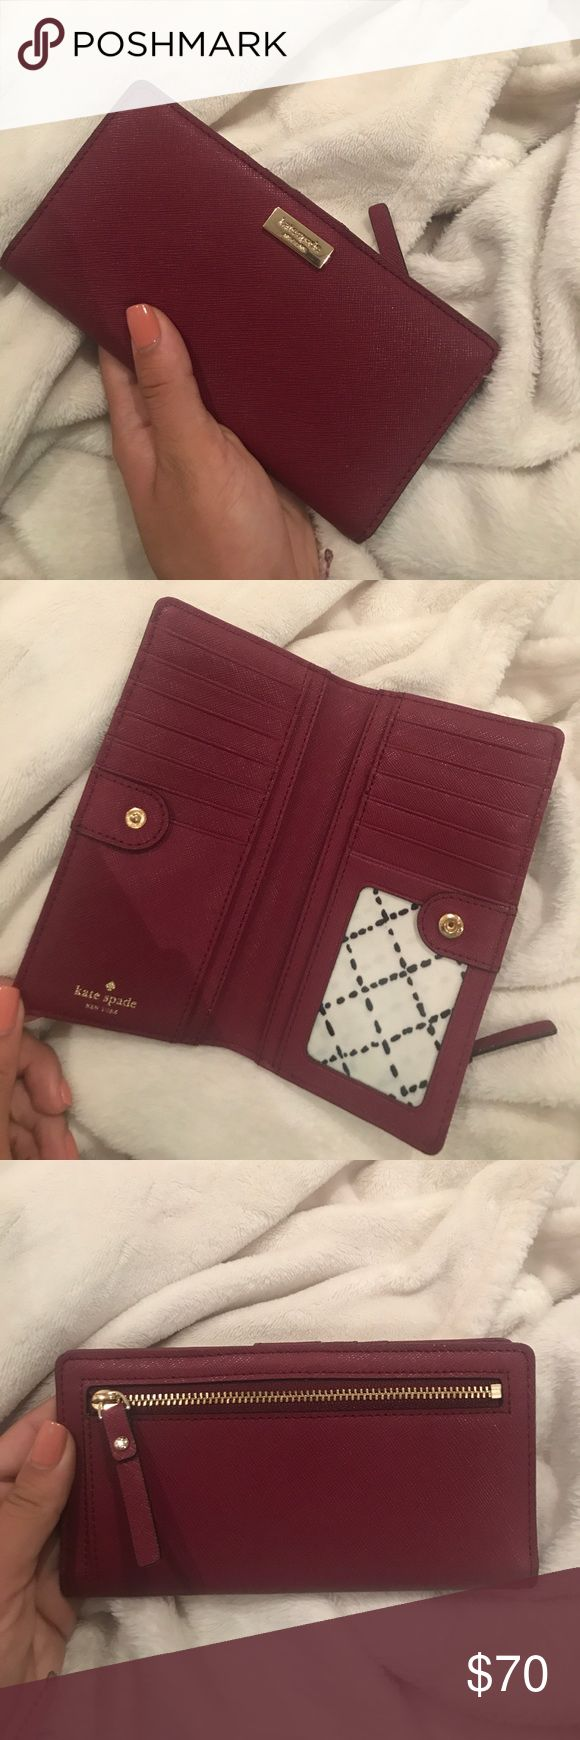 Kate Spade Cameron Street Stacy Wallet Dark Red Kate Spade Cameron Street Stacy Wallet in Wine / Dark Red. Perfect condition, never used! Make me an offer! kate spade Accessories